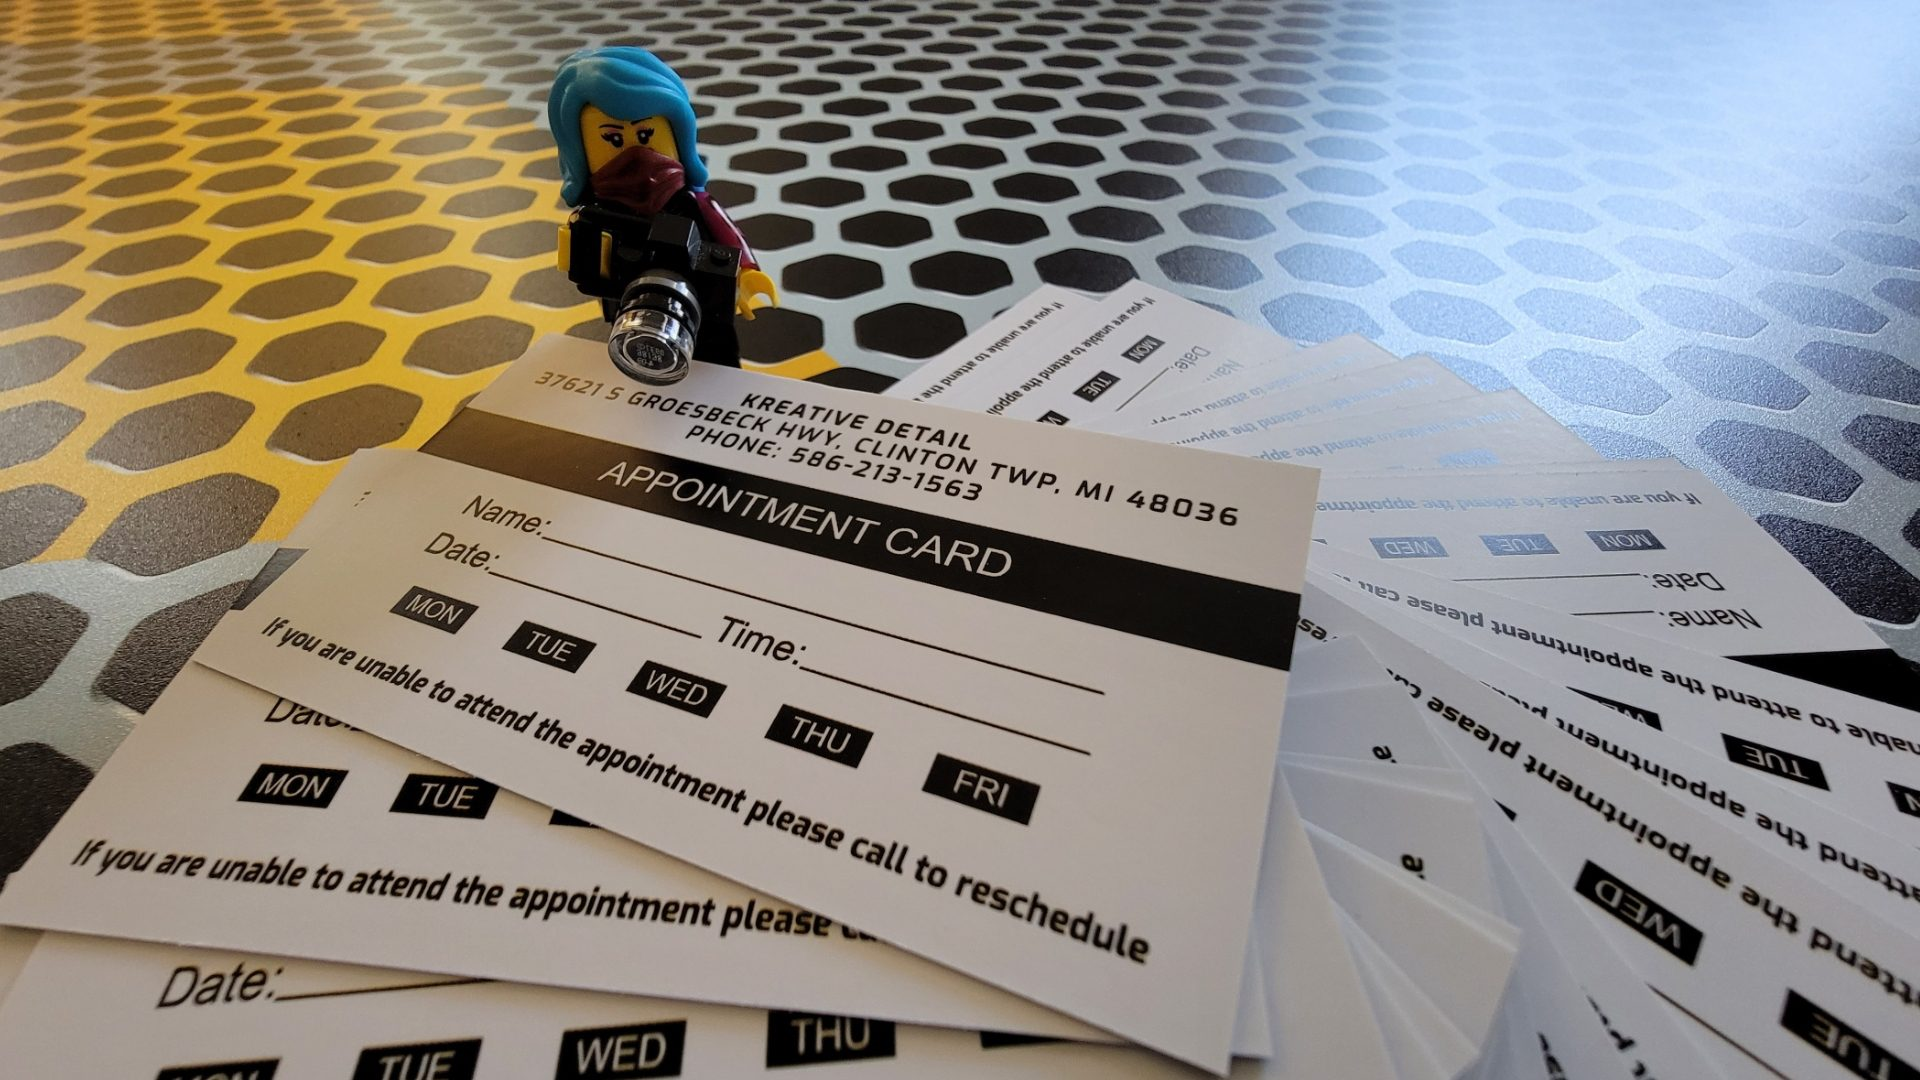 Auto Detailing Appointment Cards 7